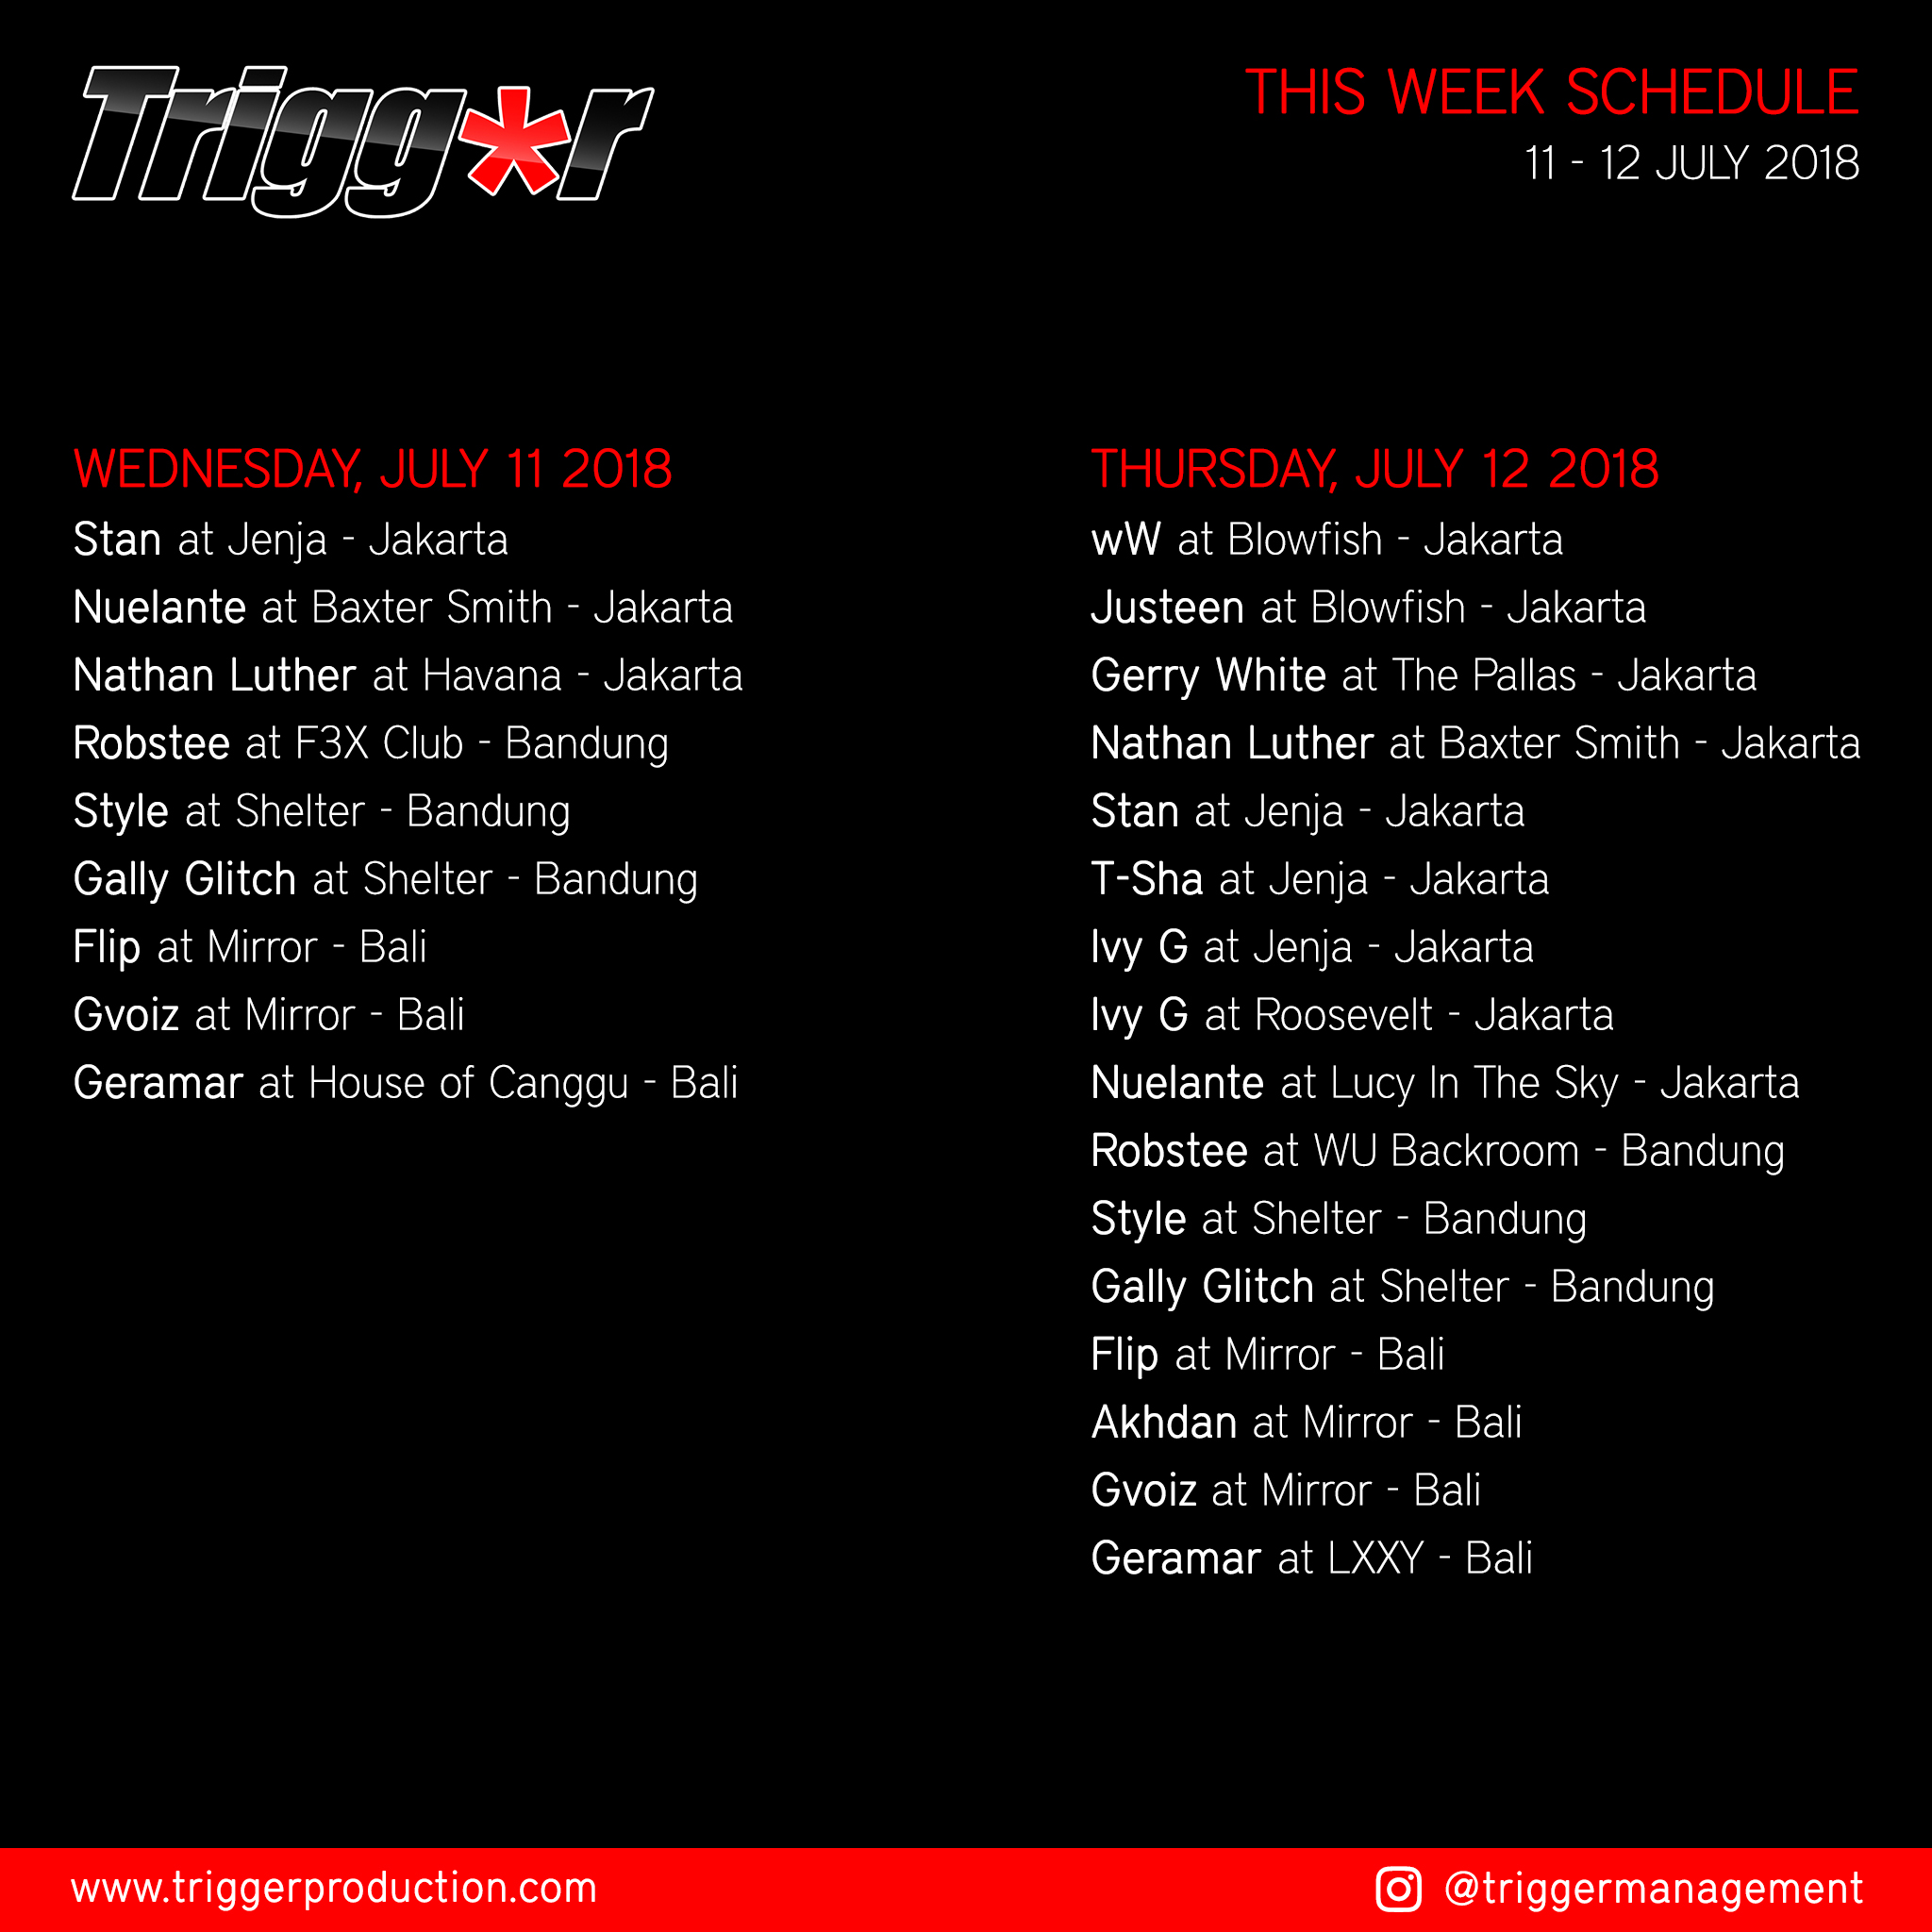 IG-SCHEDULE-POST-11-12JULY